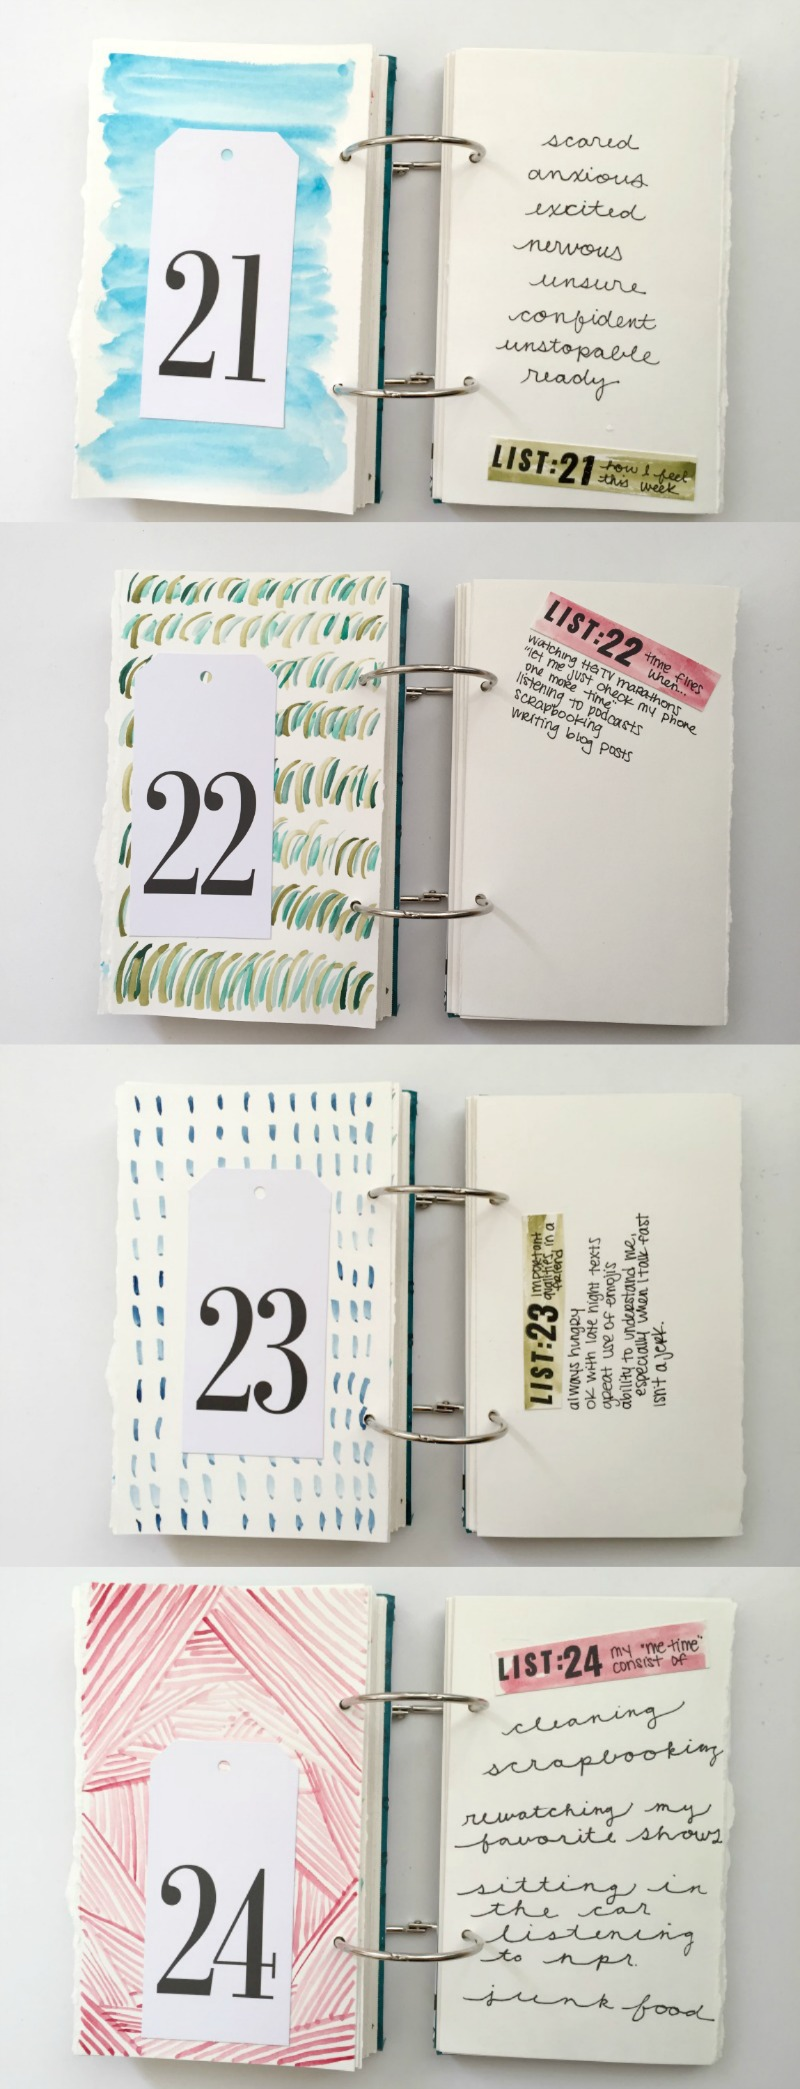 March 2016 Edition of 30 Days of Lists - Creative Journaling Challenge for People Who Love to Make Lists - Campfire Chic